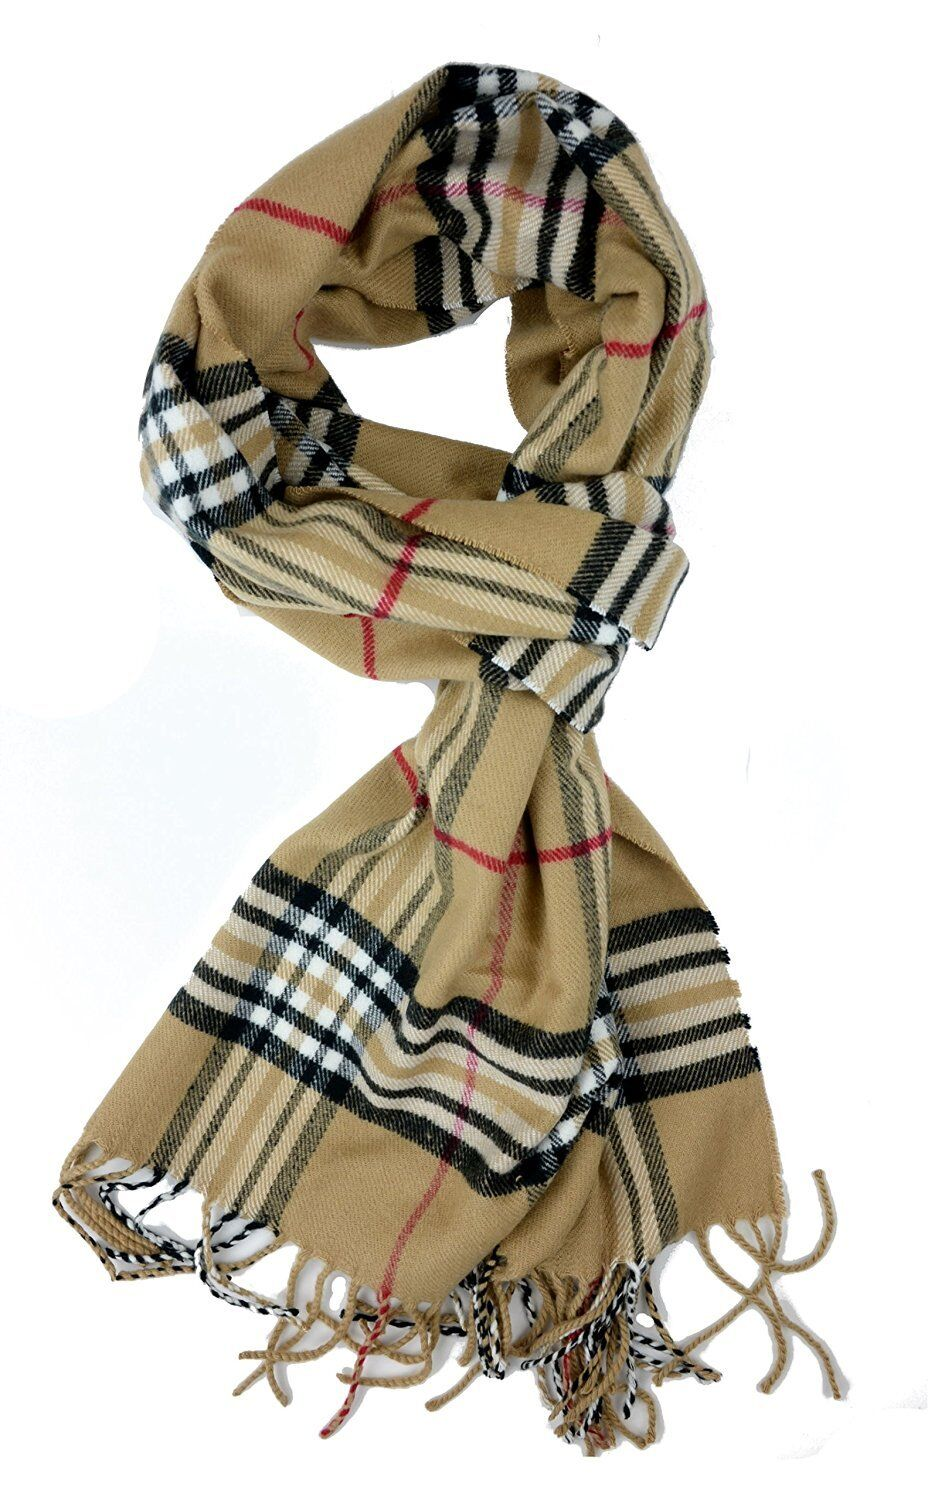 Scarf - Super Soft Luxurious Classic Cashmere Feel Winter Scarf for Women and Men